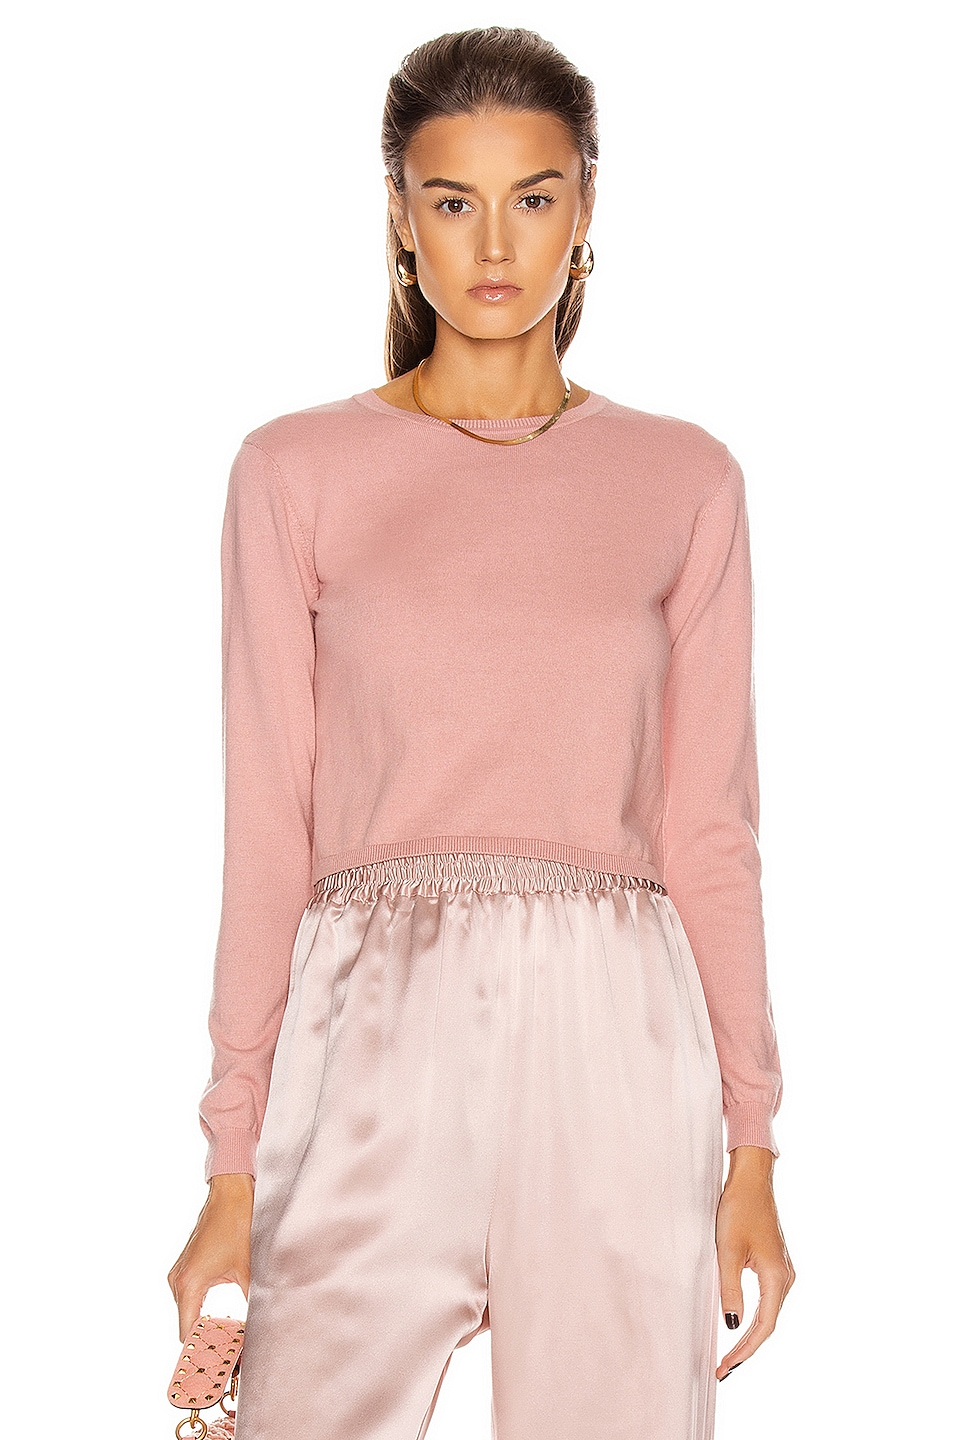 Image 1 of SABLYN Gabriela Long Sleeve Top in Cherry Blossom